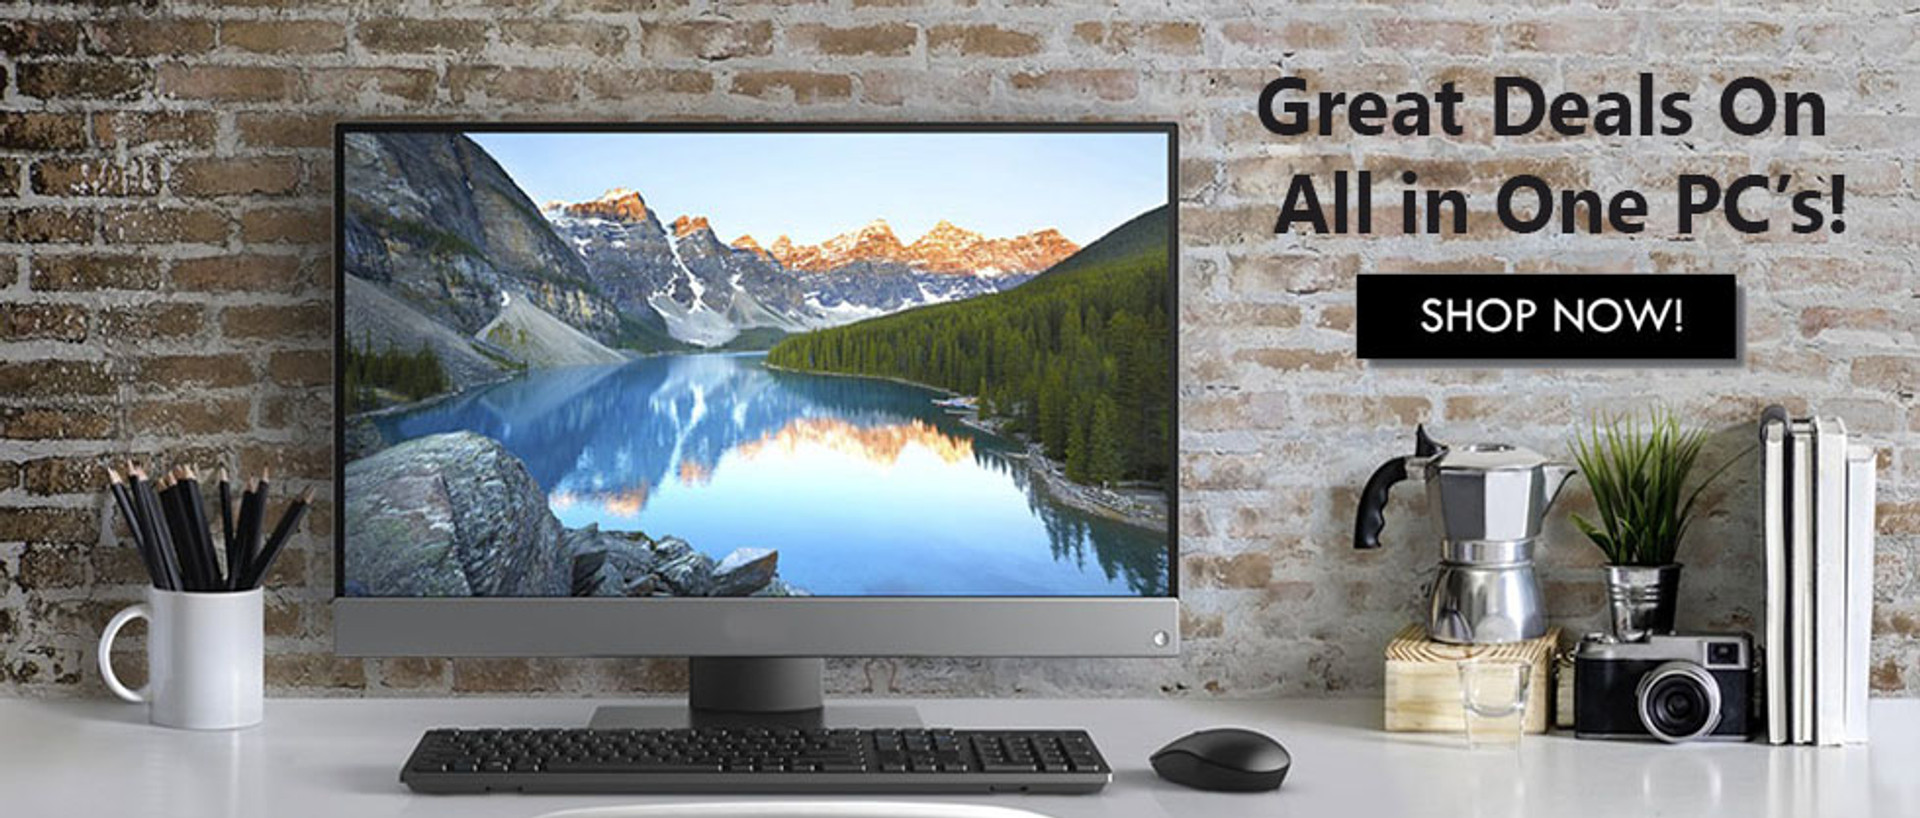 Great Deals On All In One PCs!